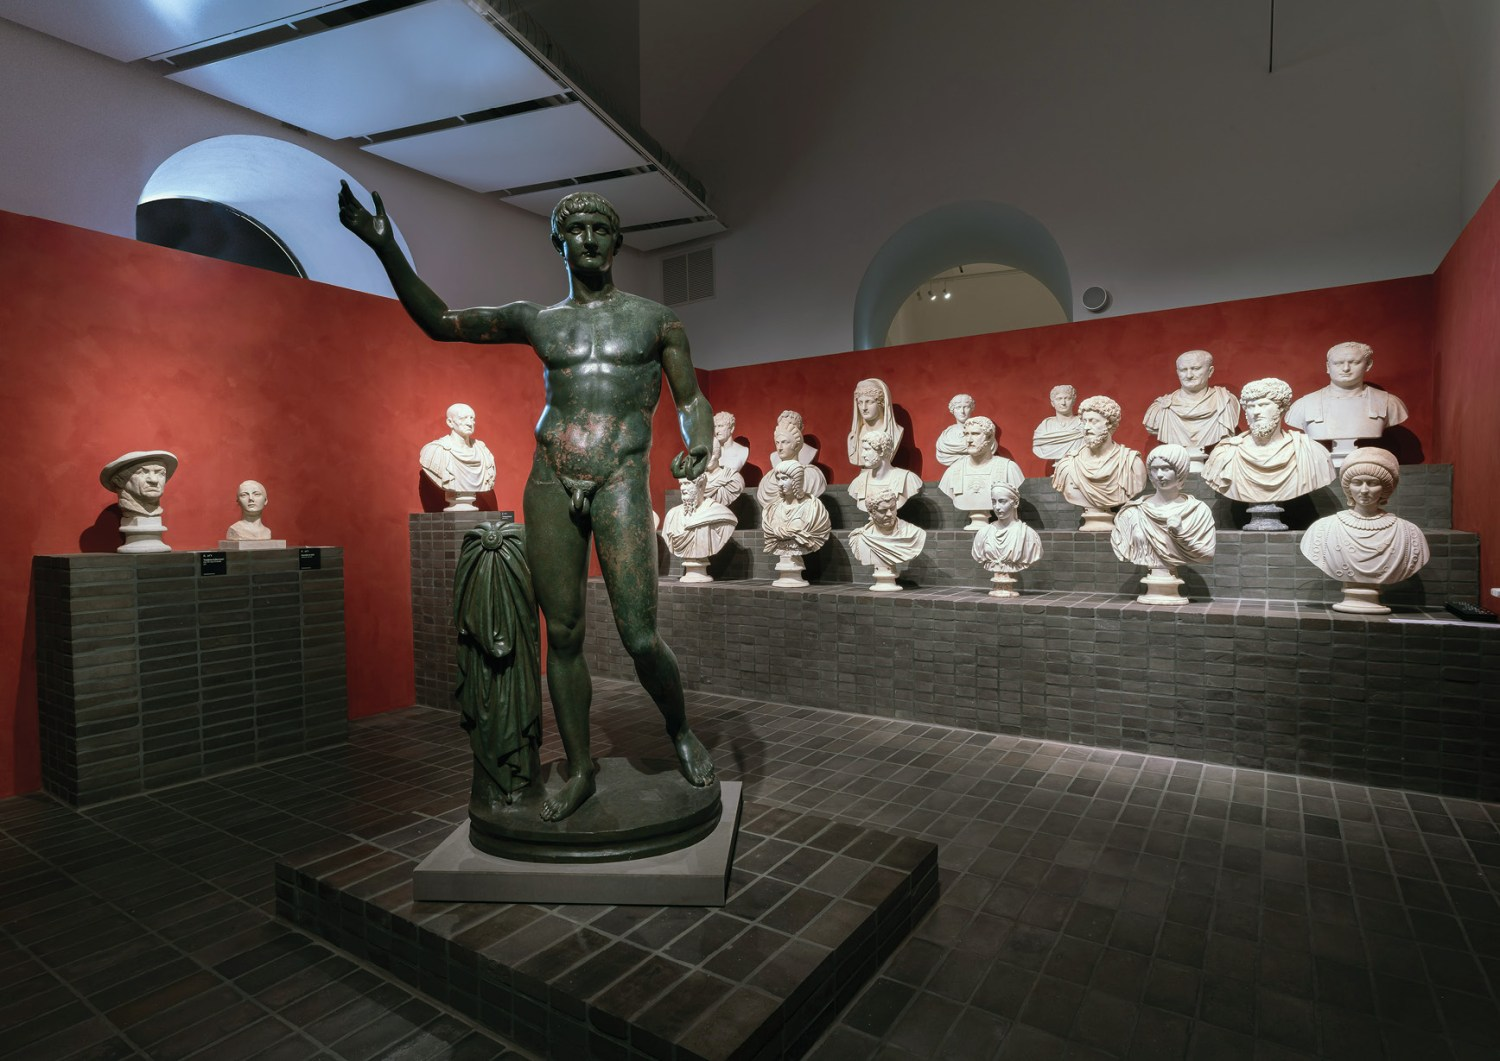 ABOVE The bronze statue in the foreground was found in the ancient city of Cures, and has been reconstructed to show Germanicus, the adopted son of the emperor Tiberius. The head, right leg, and much of both arms are plaster reconstructions, though, leaving the true identity of the figure unknown. In the background, various busts from the collection can be seen.